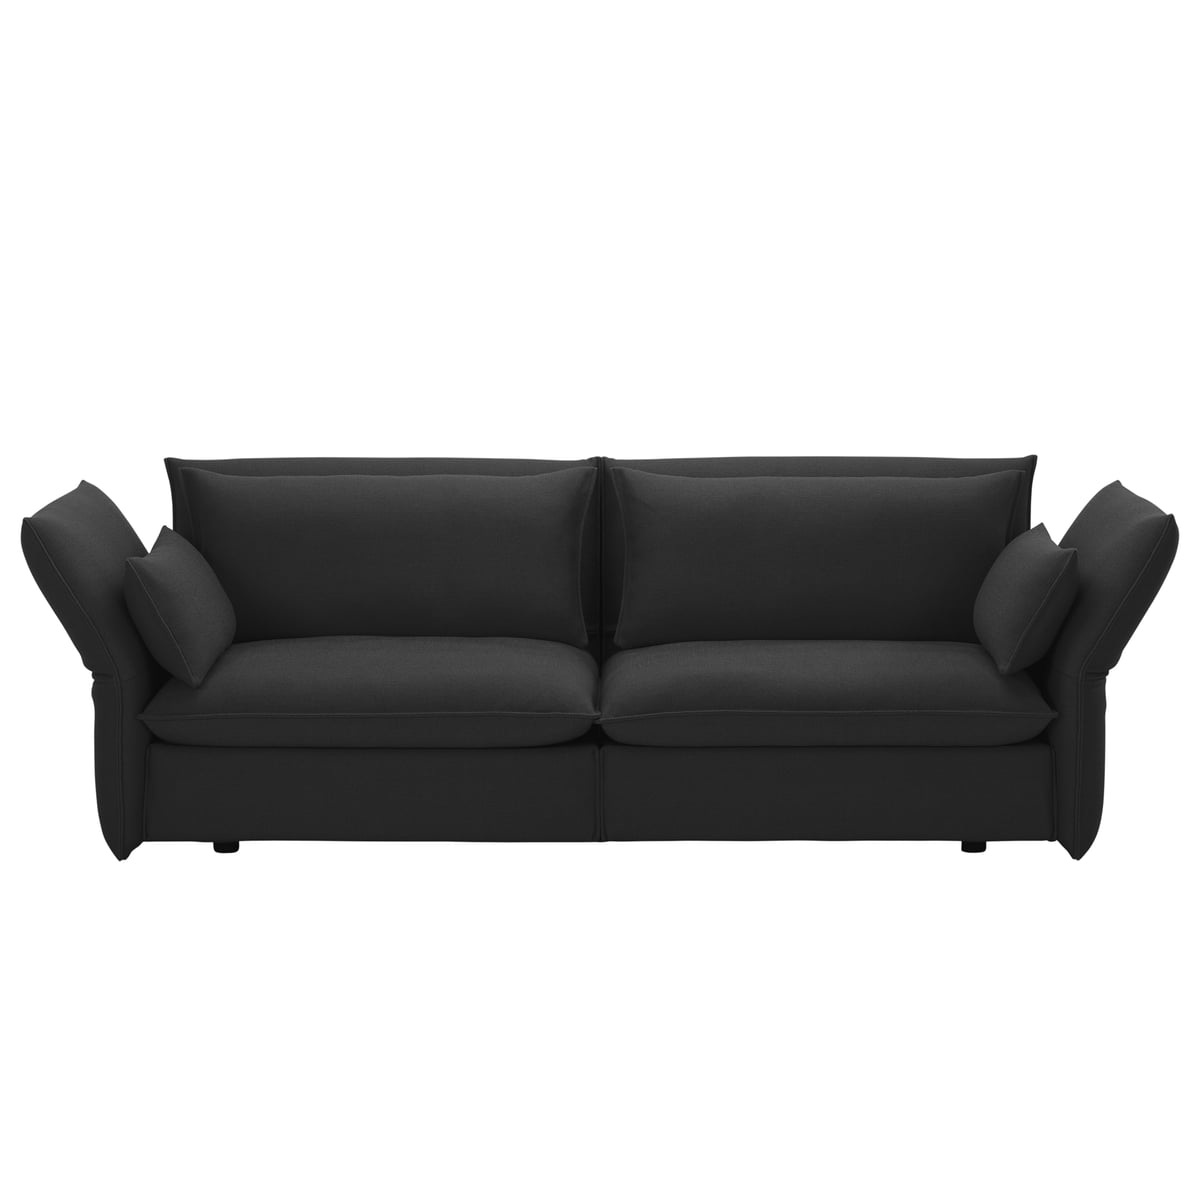 Vitra mariposa 3 sitzer sofa imwohndesign shop for 3 on a couch